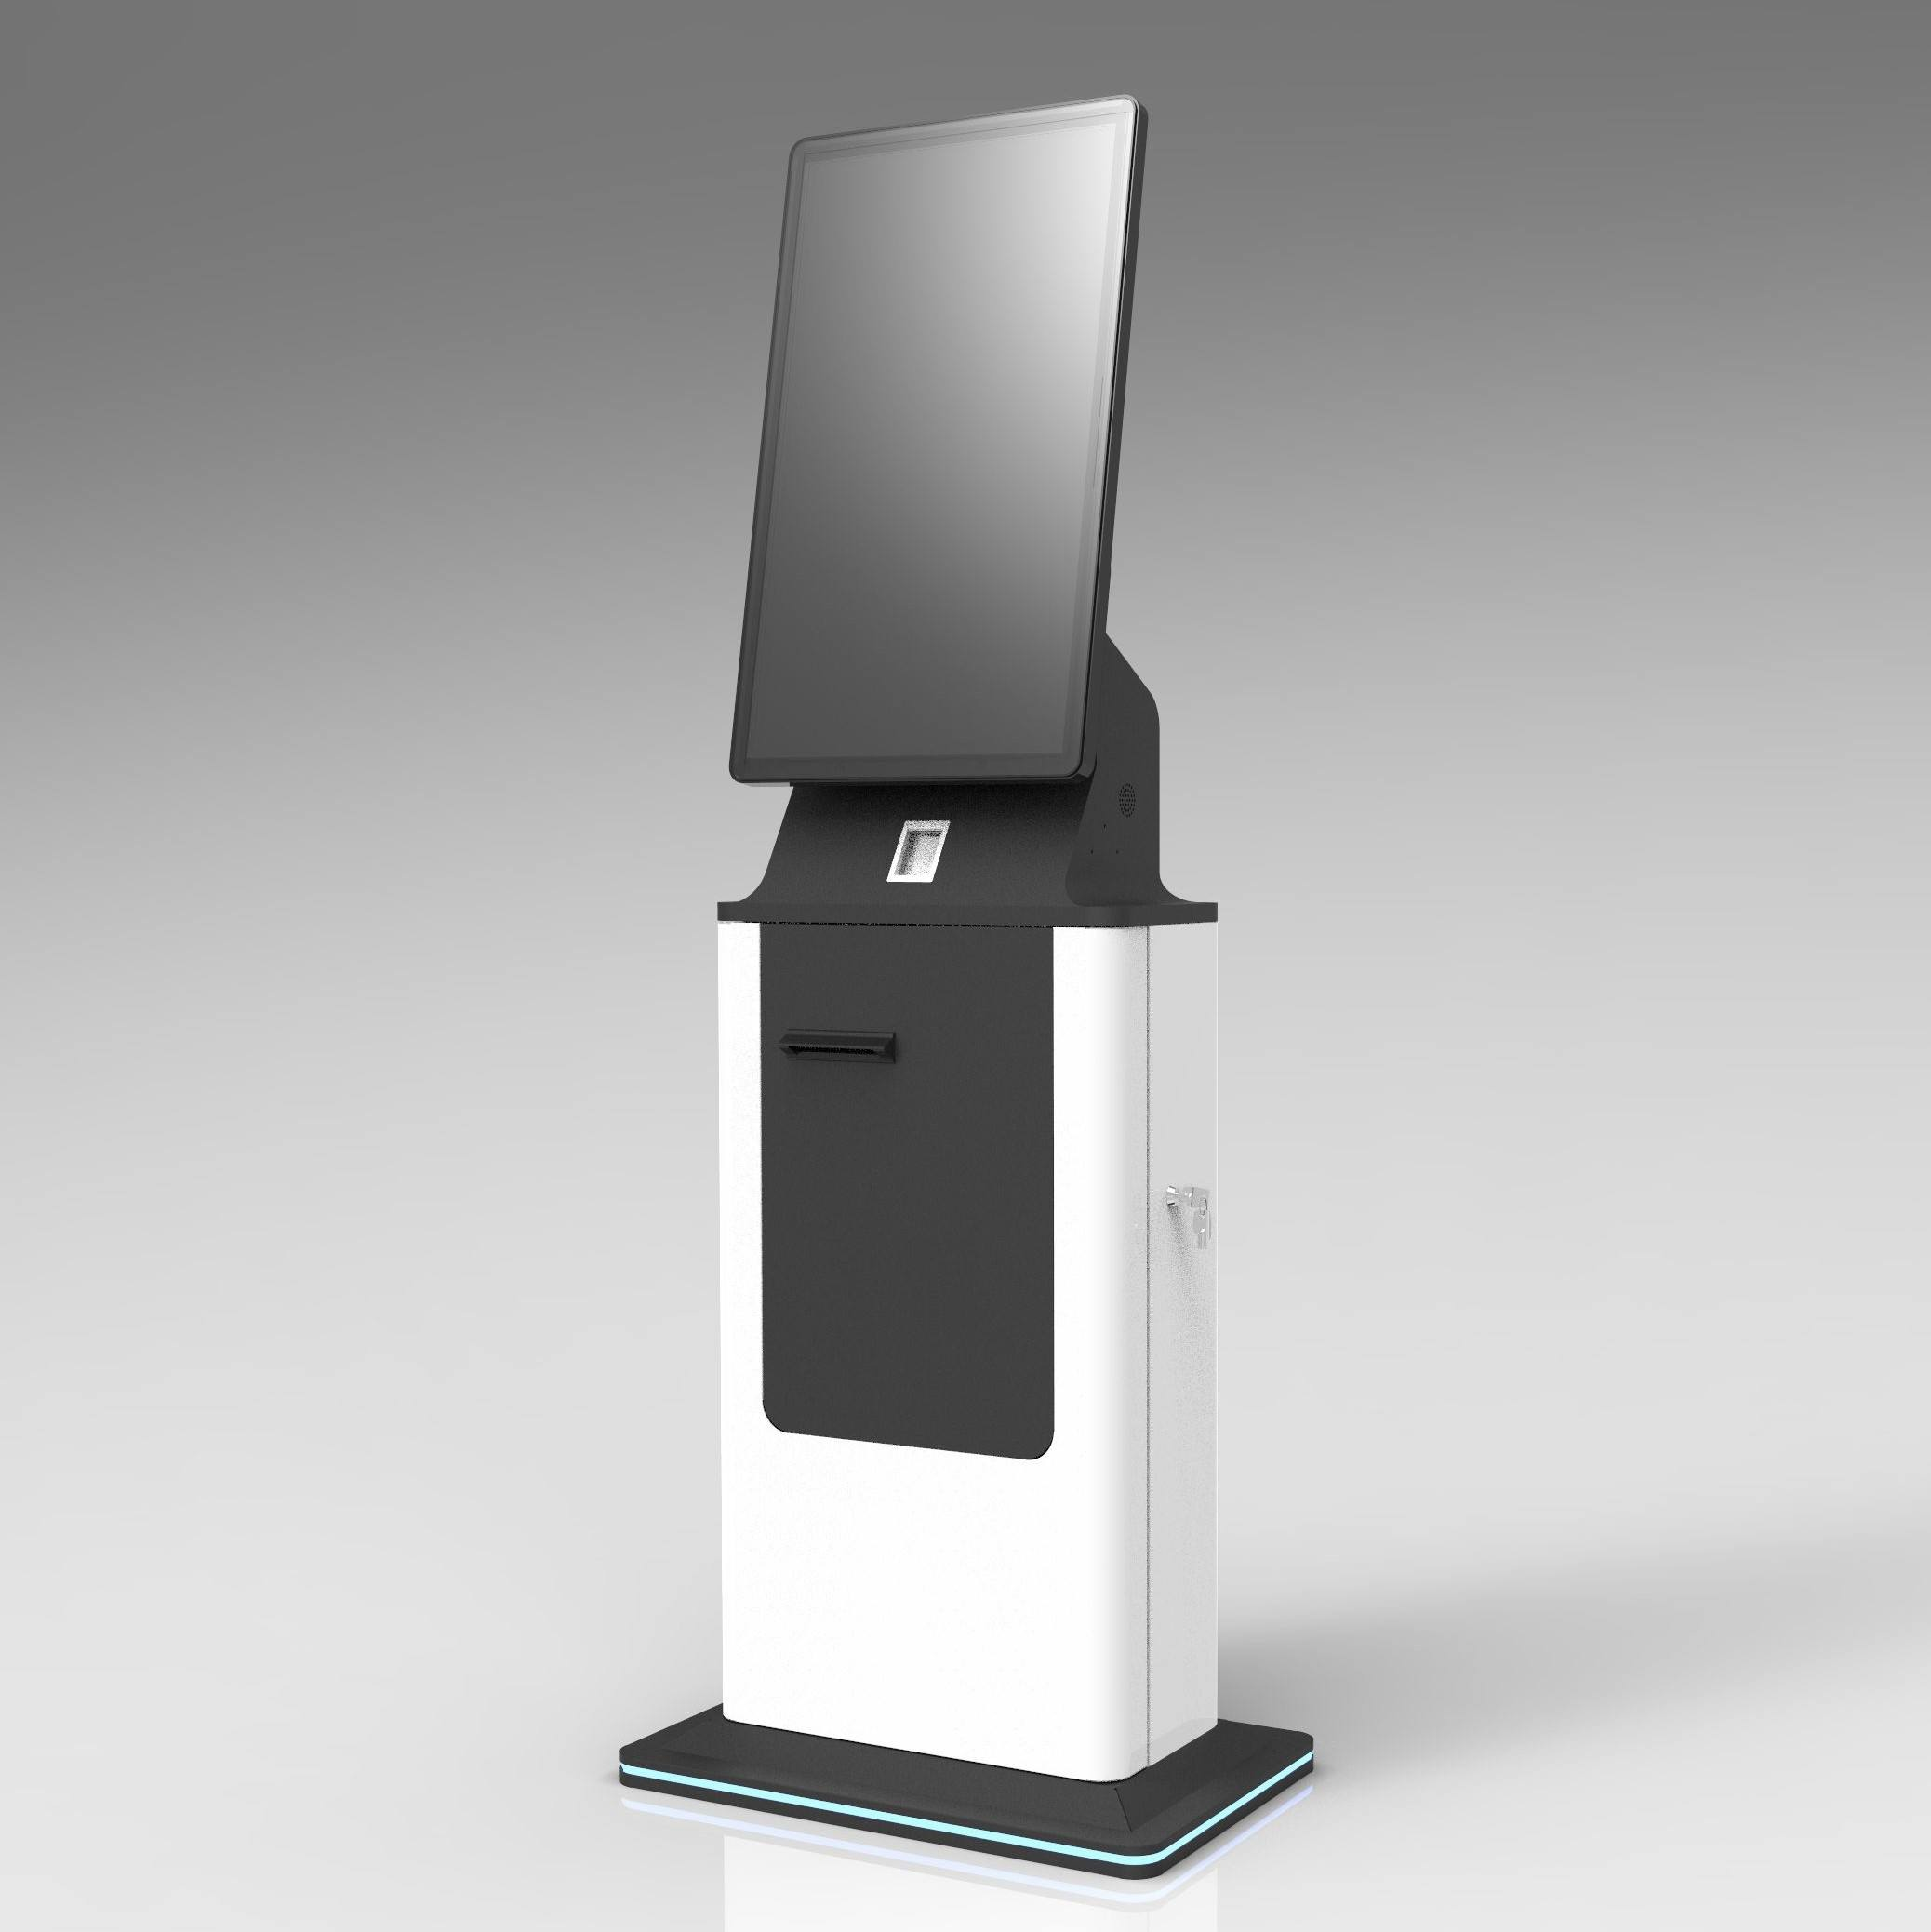 Flat Capacitive credit card kiosk for POS Machines Self Service Payment in Bank and Hospitals